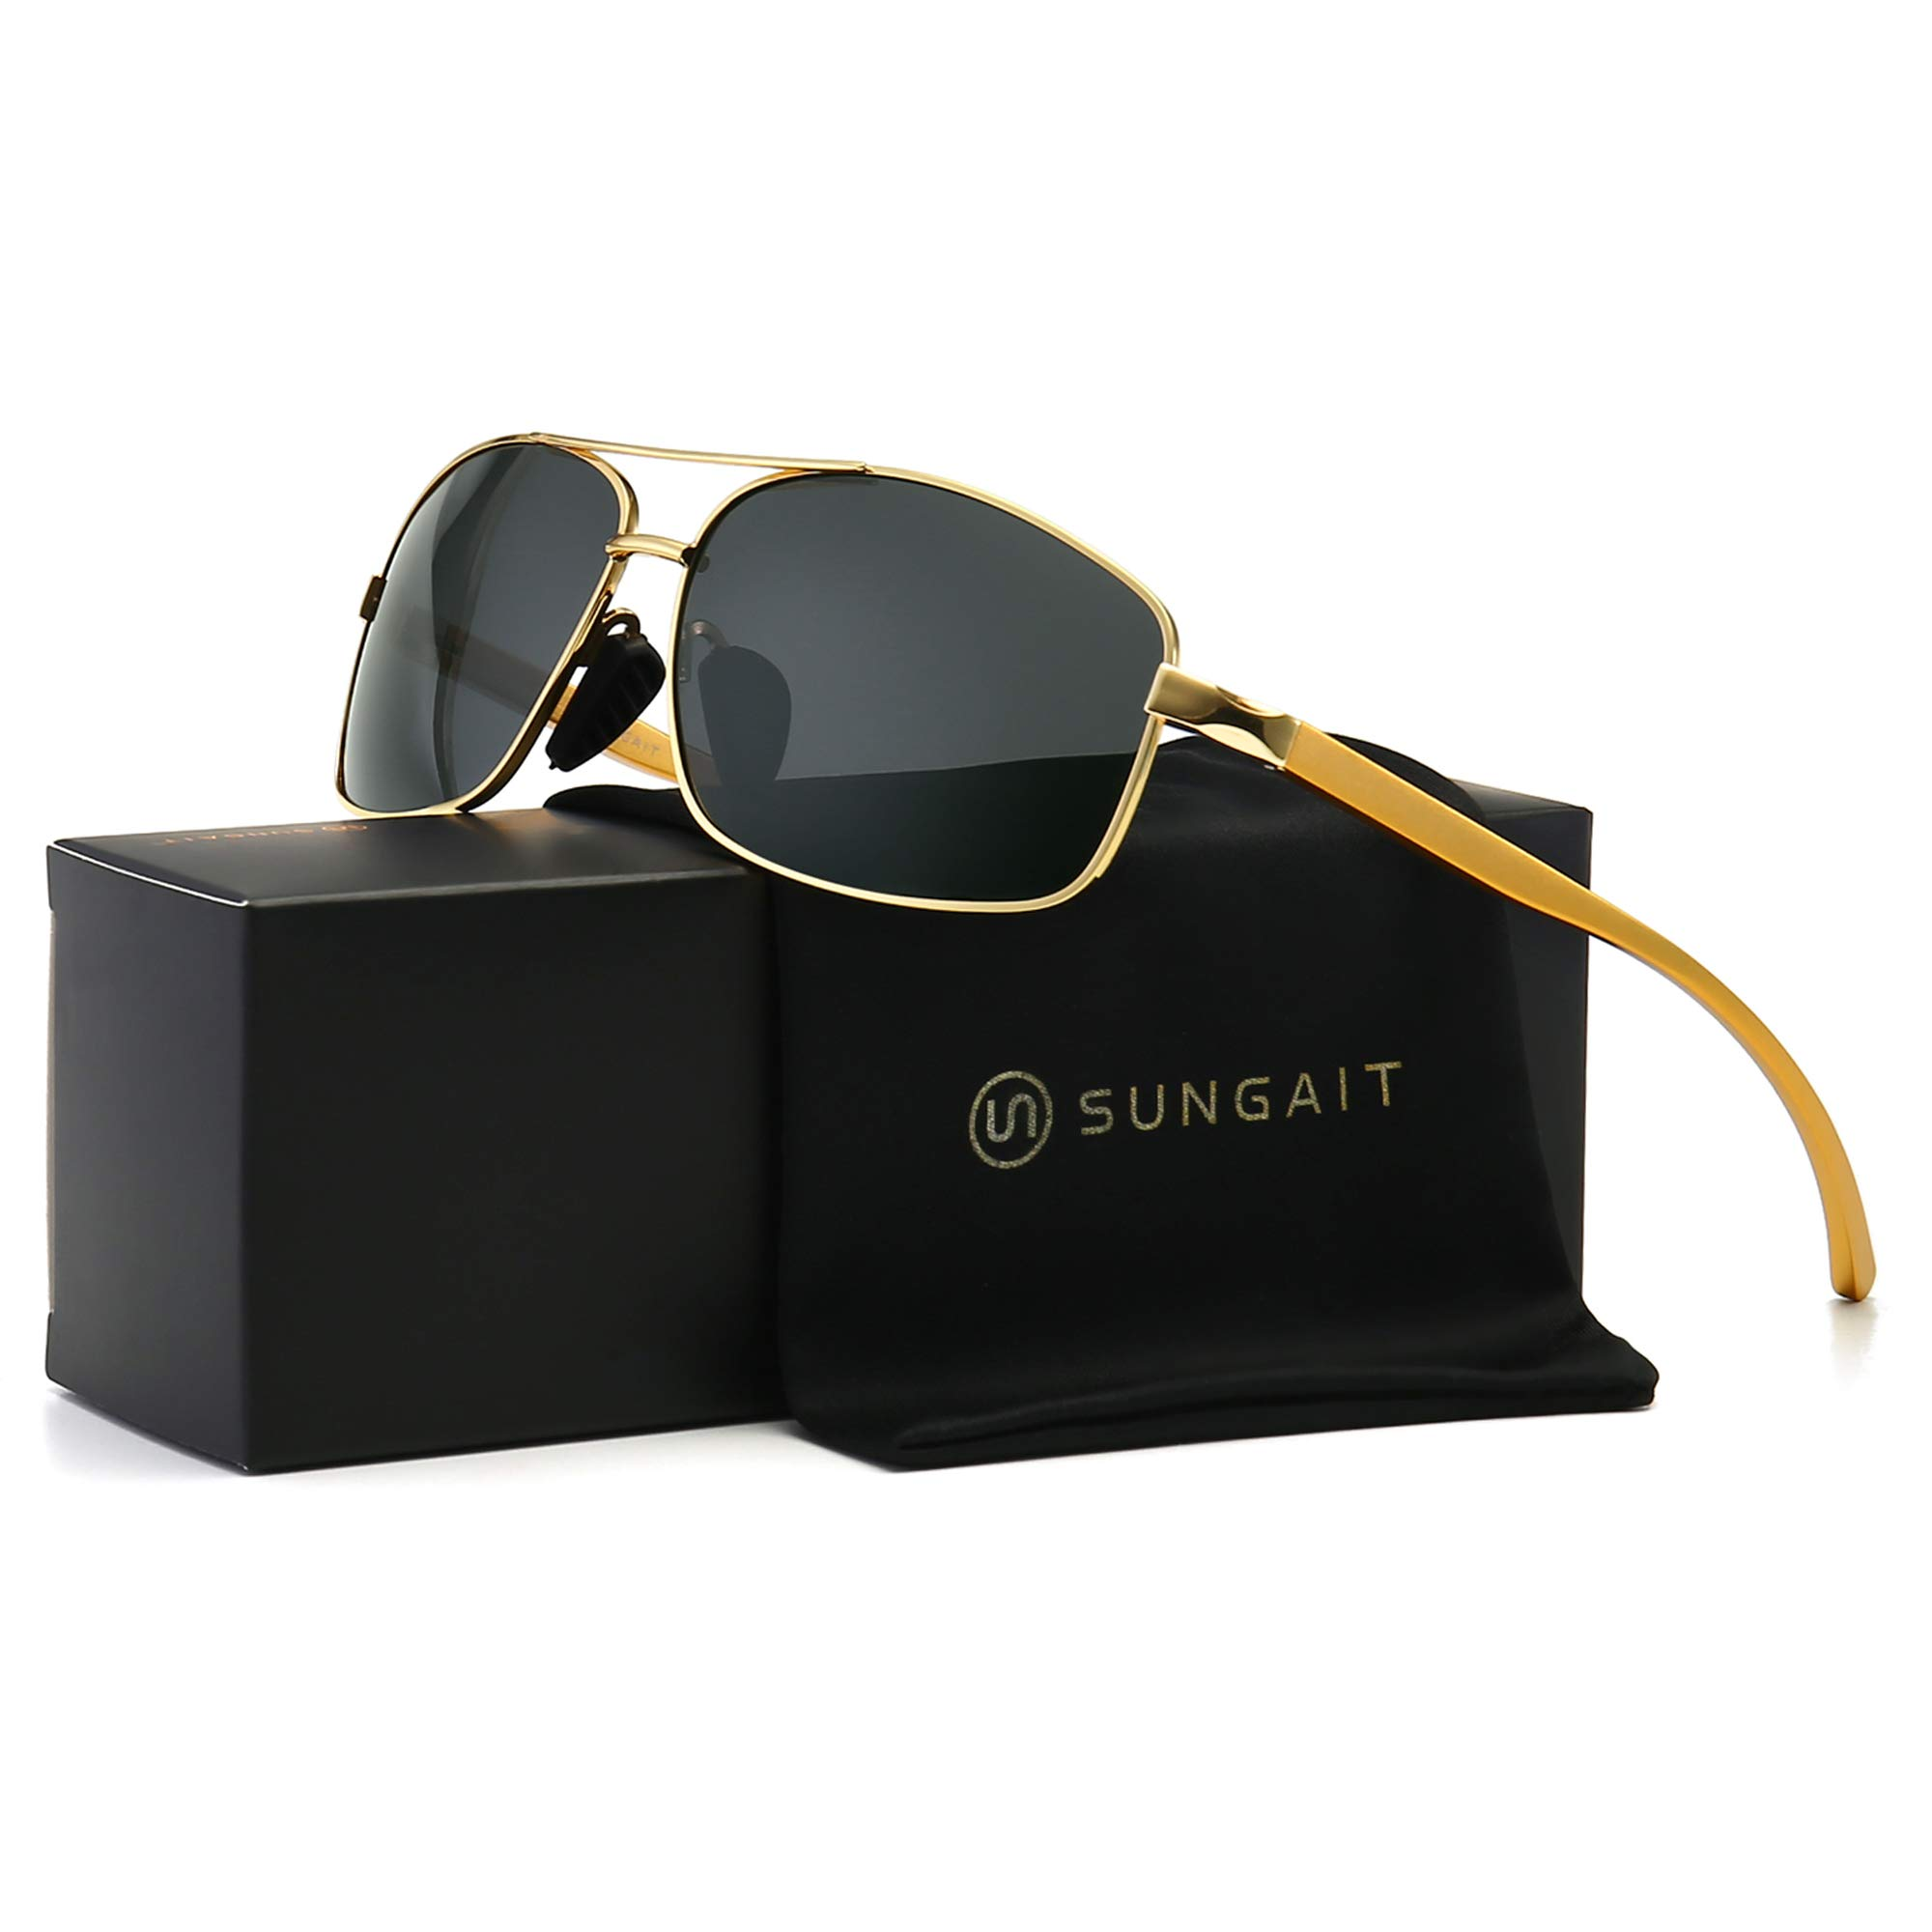 SUNGAIT Ultra Lightweight Rectangular Polarized Sunglasses UV400 Protection (Gold Frame Grey Lens, 62) Metal Frame 2458 JKH by SUNGAIT